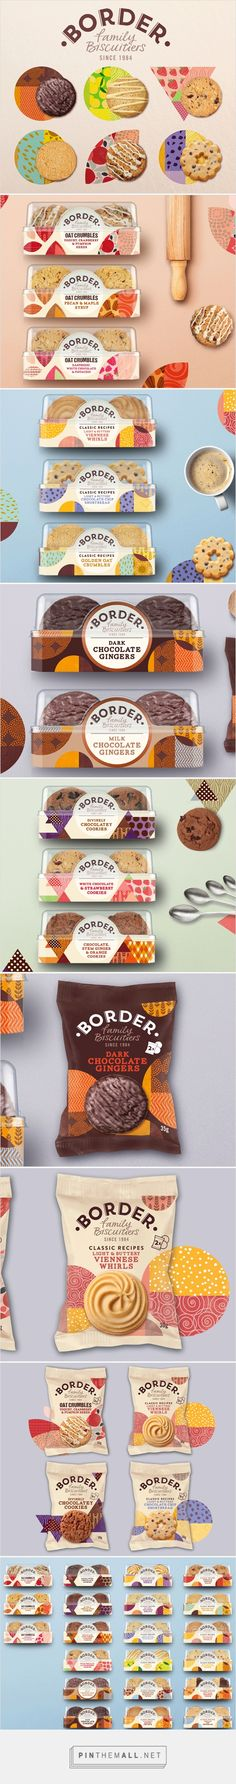 Coley Porter Bell Gives Border Biscuits a New Look - Logo Designer... - a grouped images picture